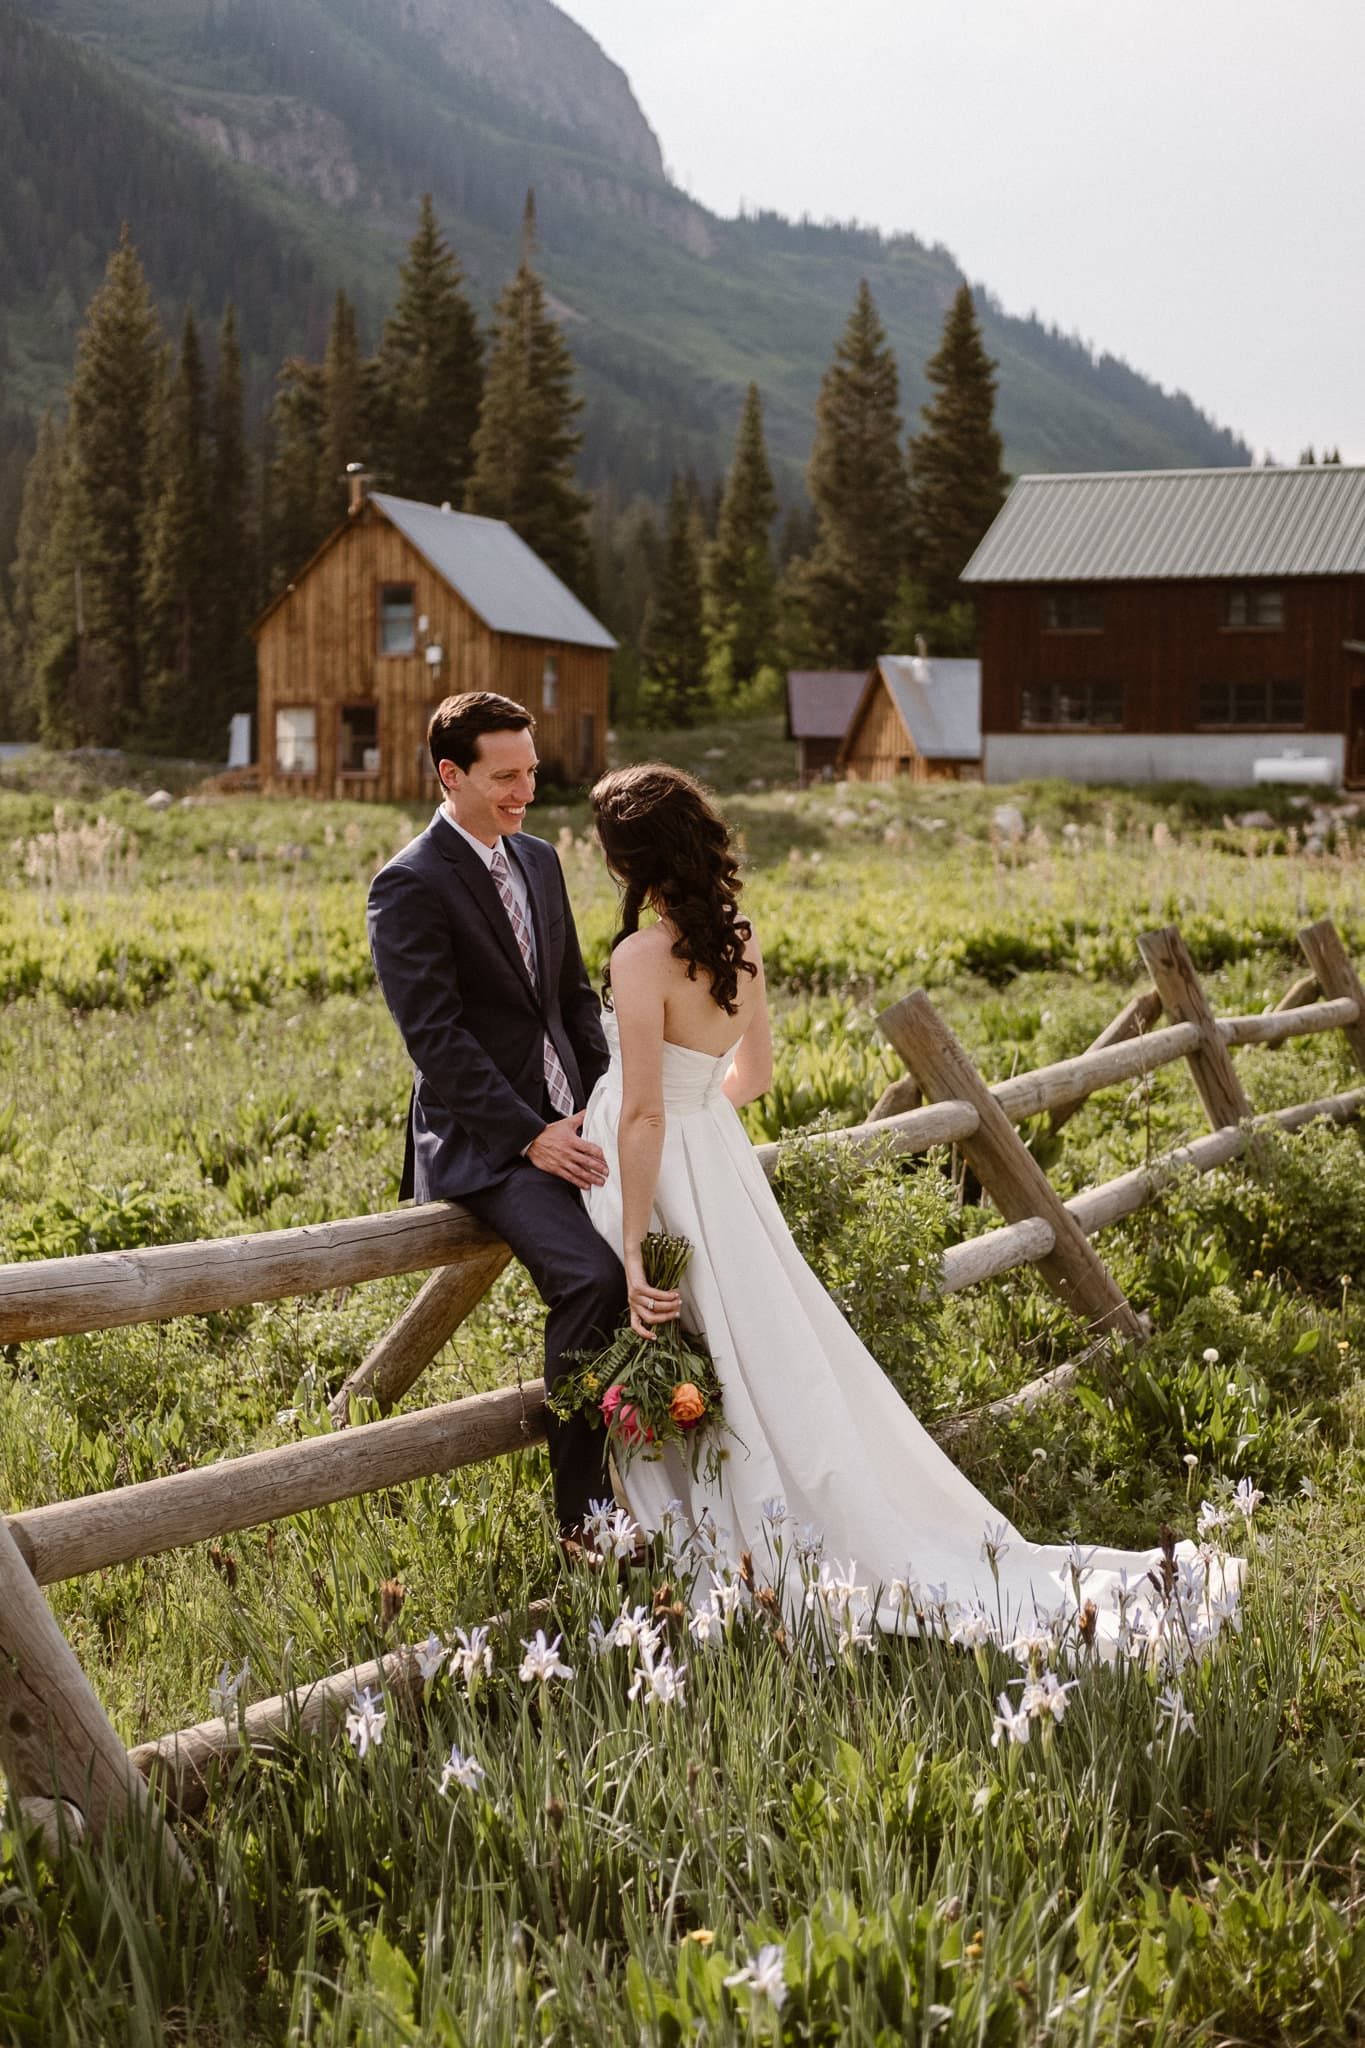 Crested Butte elopement photographer, Colorado adventure wedding photographer, bride and groom portraits in Gothic